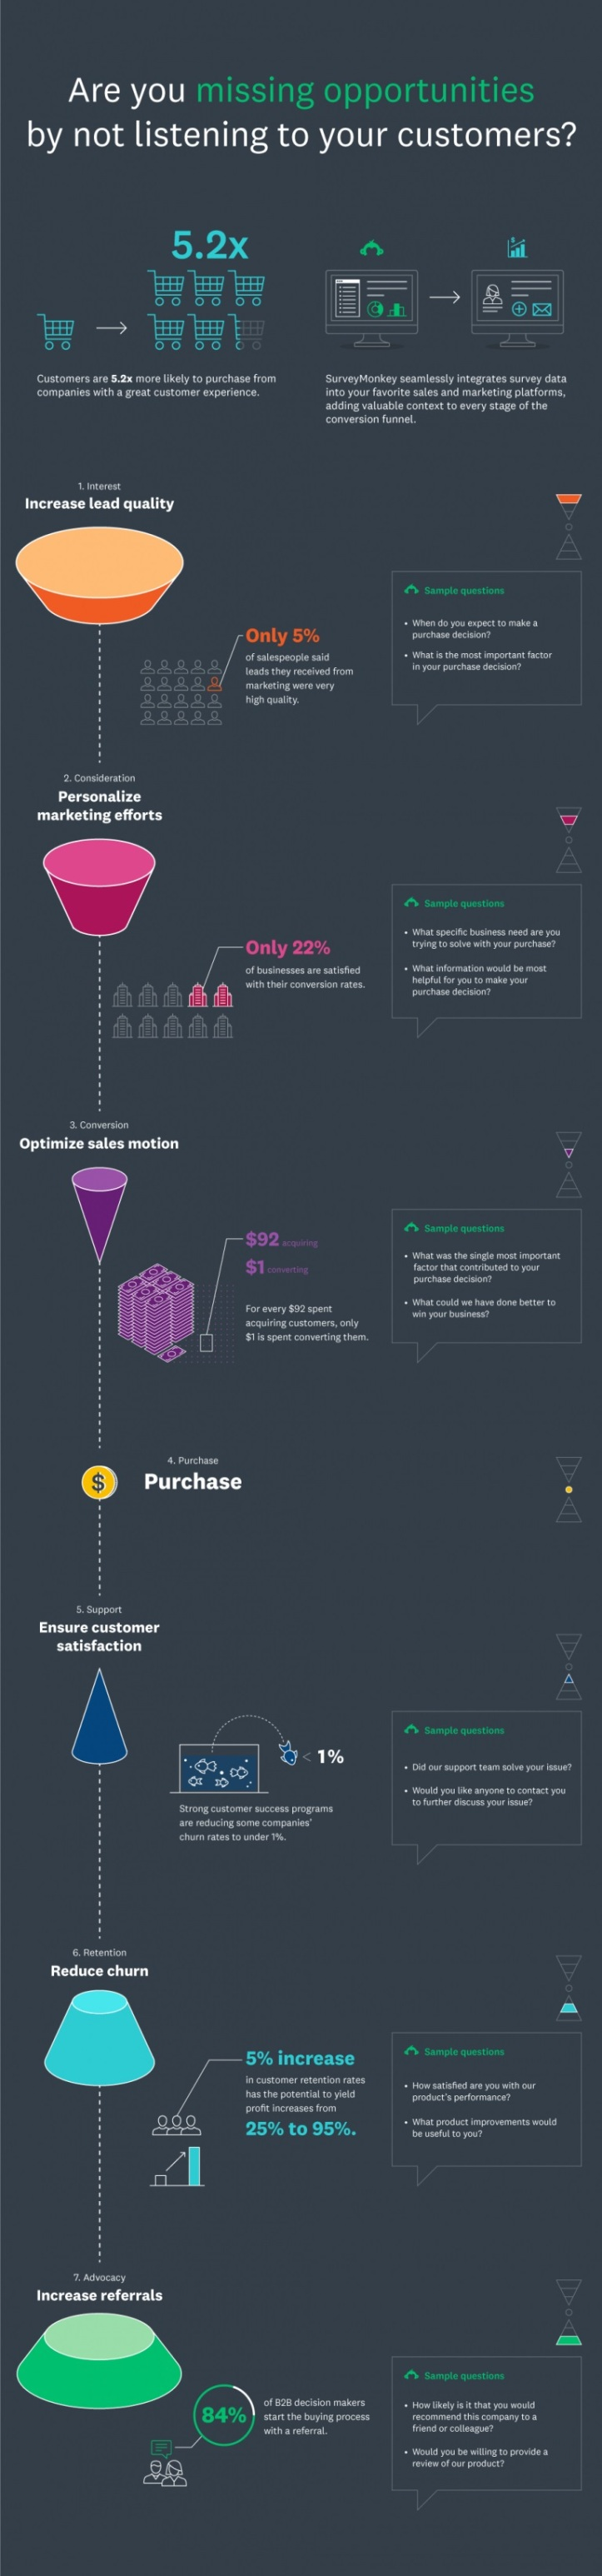 integration-funnel-infographic-3-768x3285